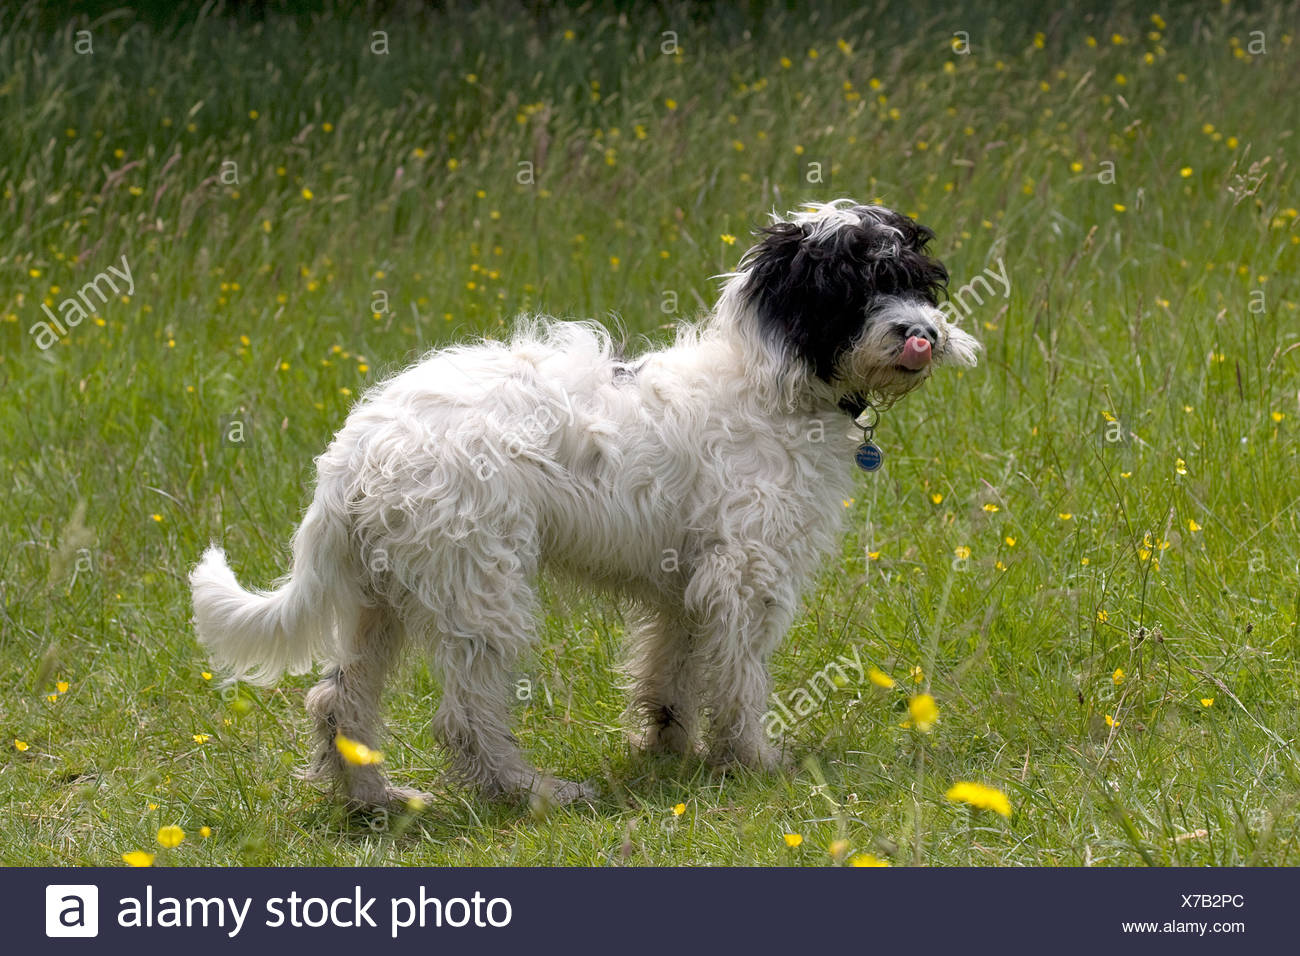 cockerpoo dog standing in spring meadow Stock Photo